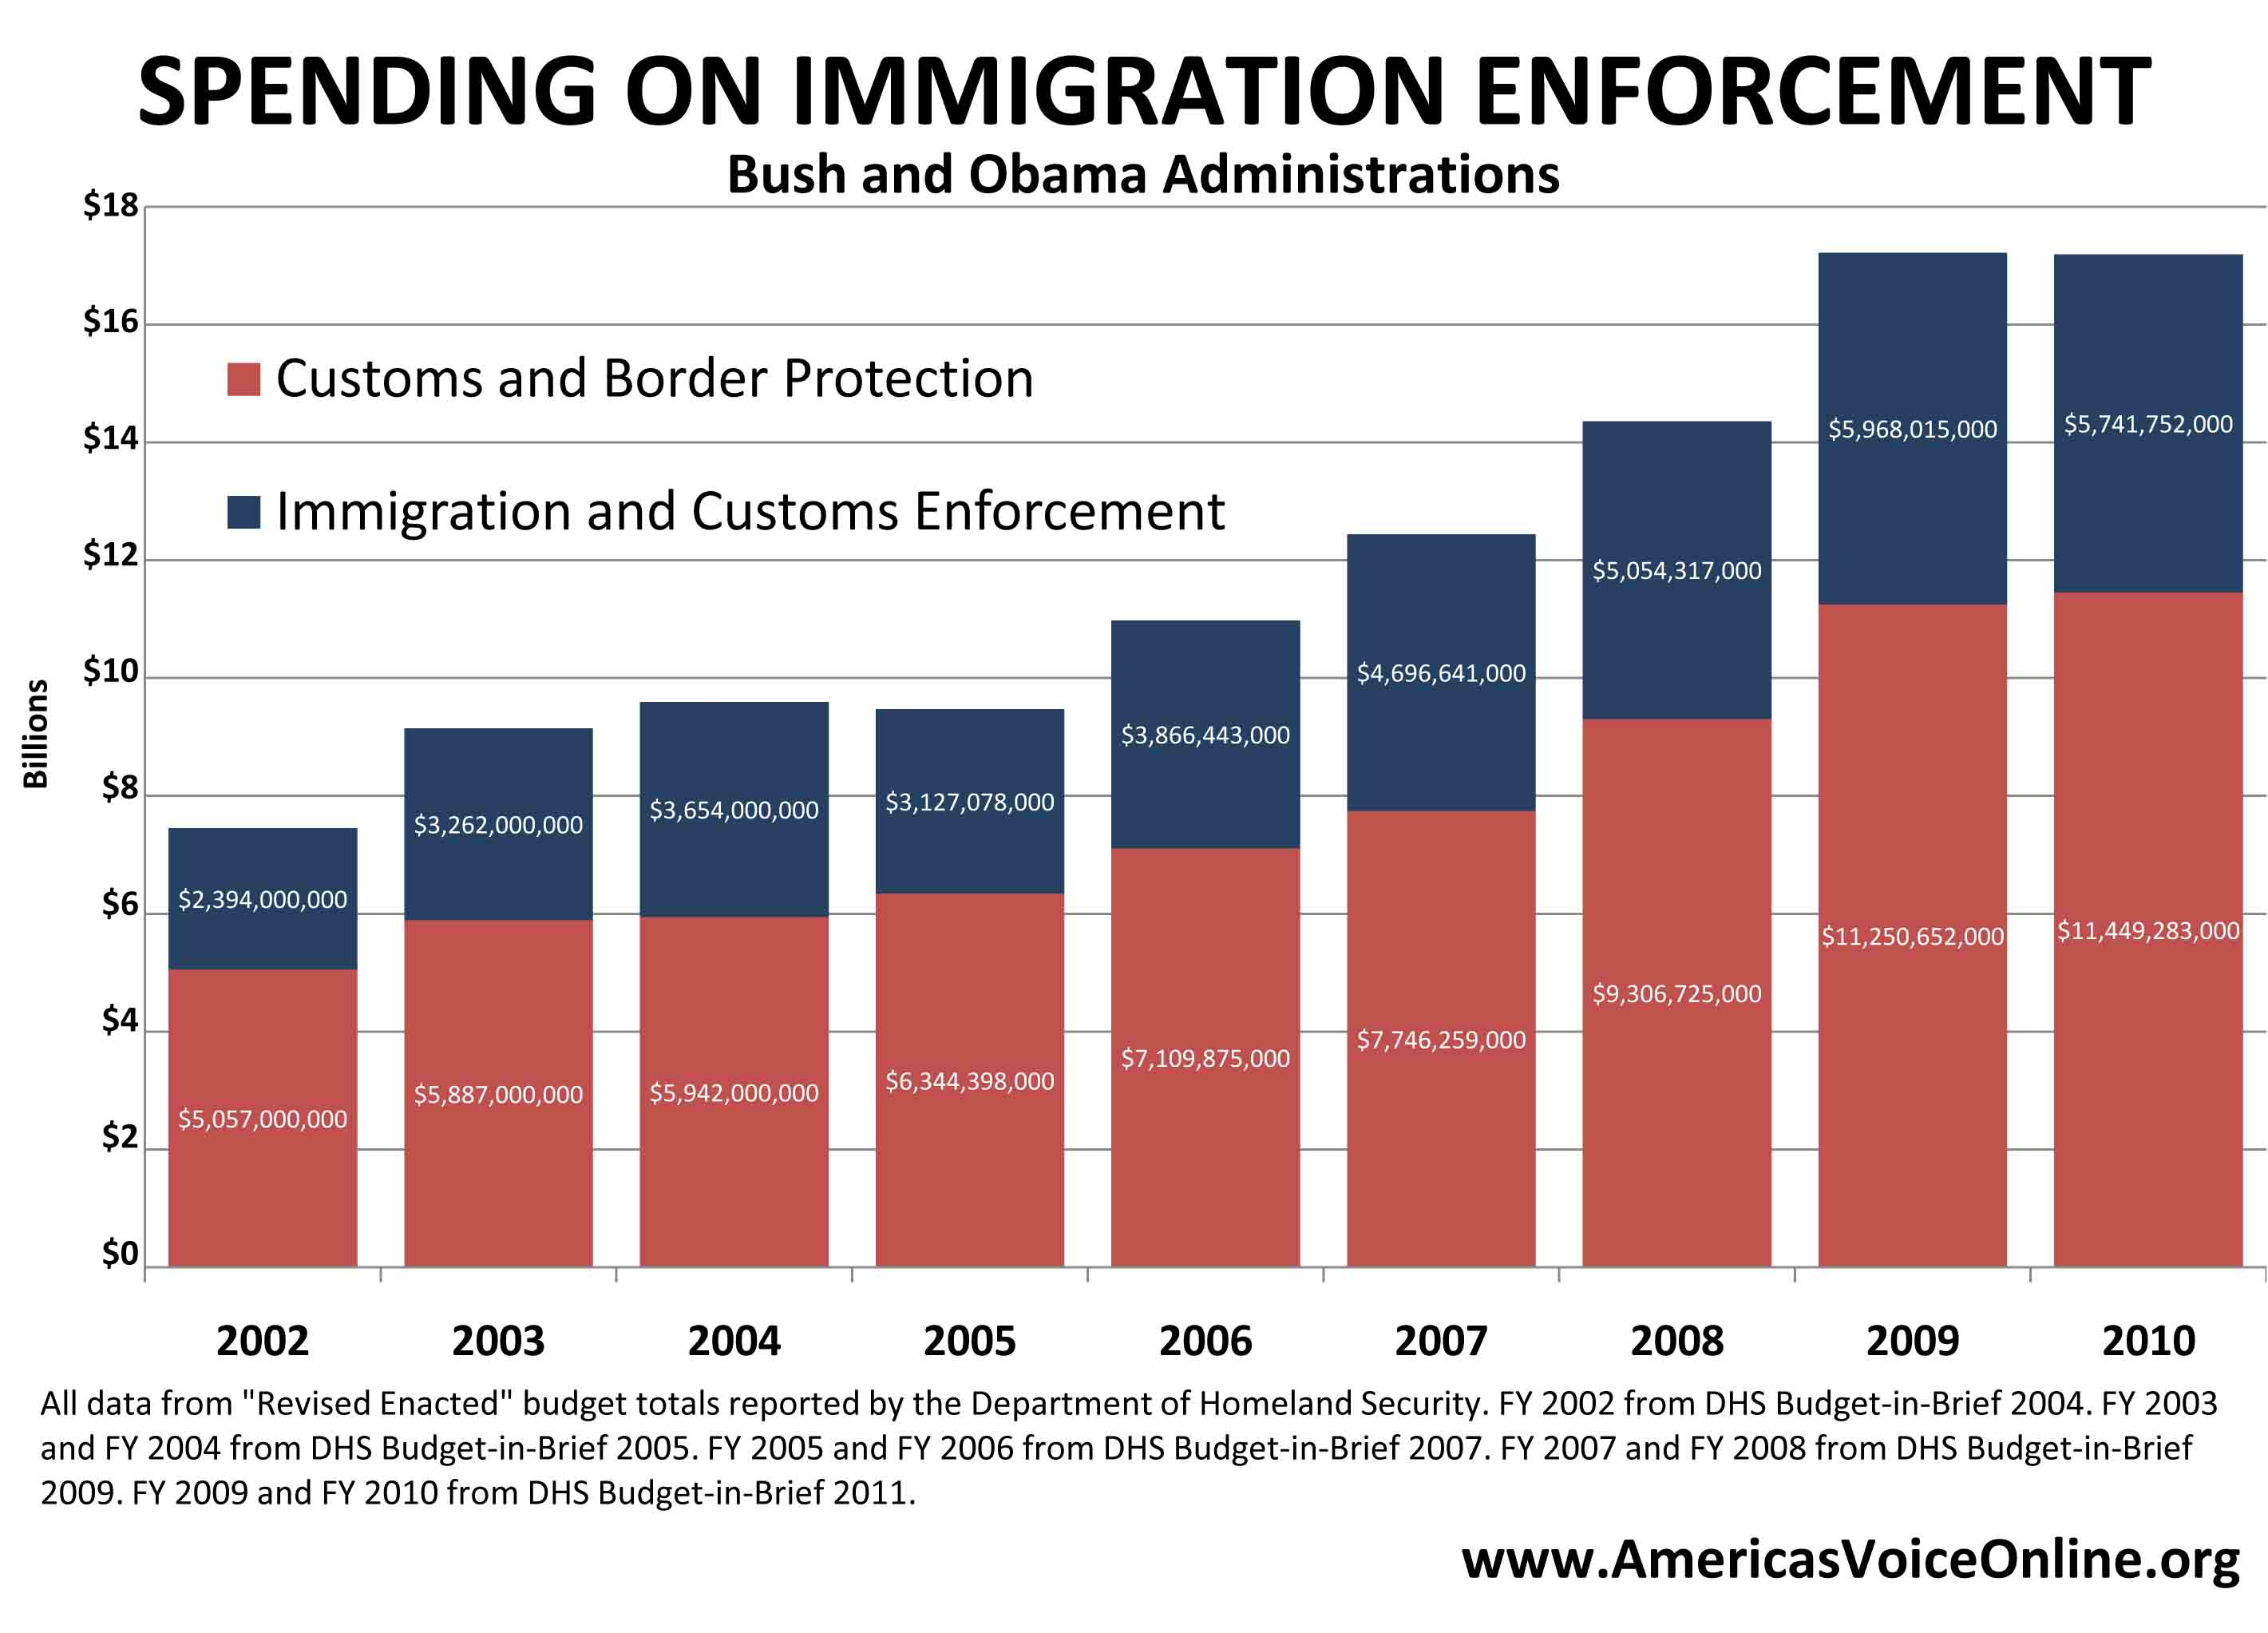 Spending on Immigration Enforcement